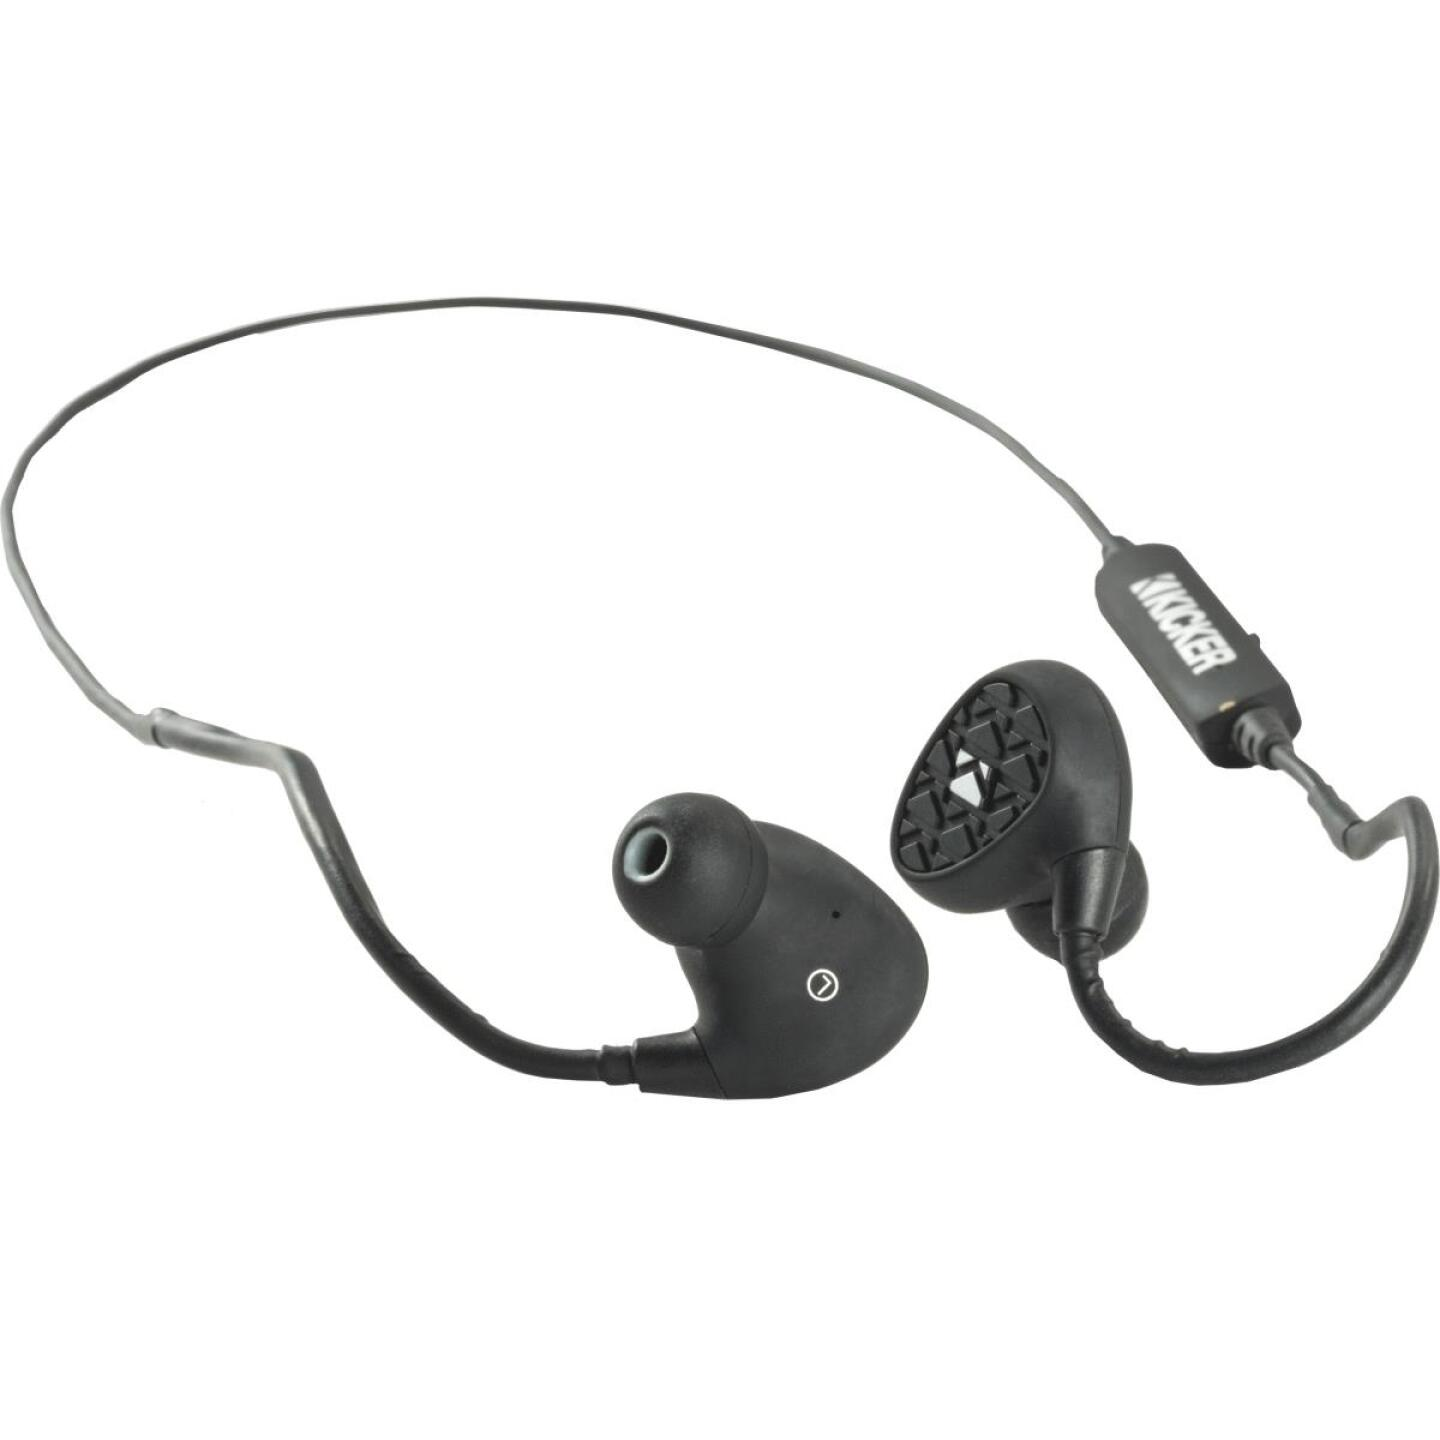 Kicker EB400 Waterproof Bluetooth Black Earbuds Image 2